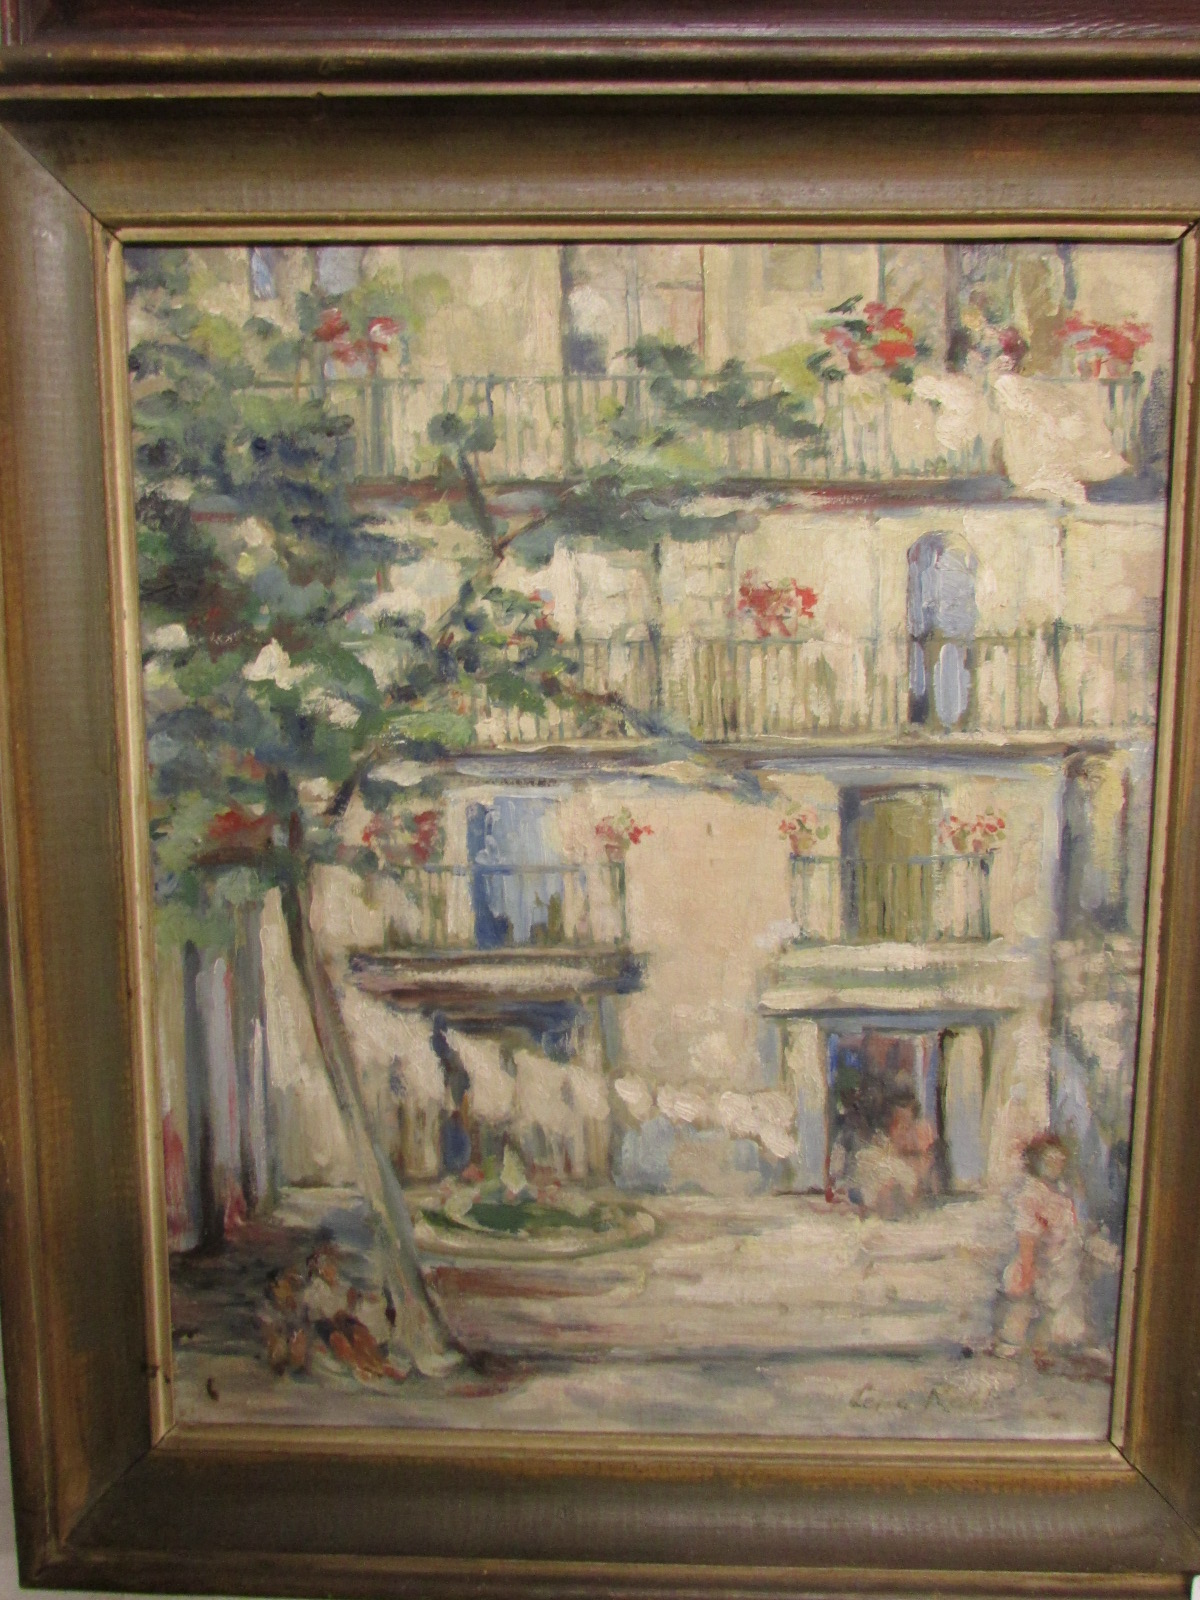 Lot 21 - Balconied house with tree and figures, oil on canvas, signed Lena Robb lower right, (55cm x 45.5cm),